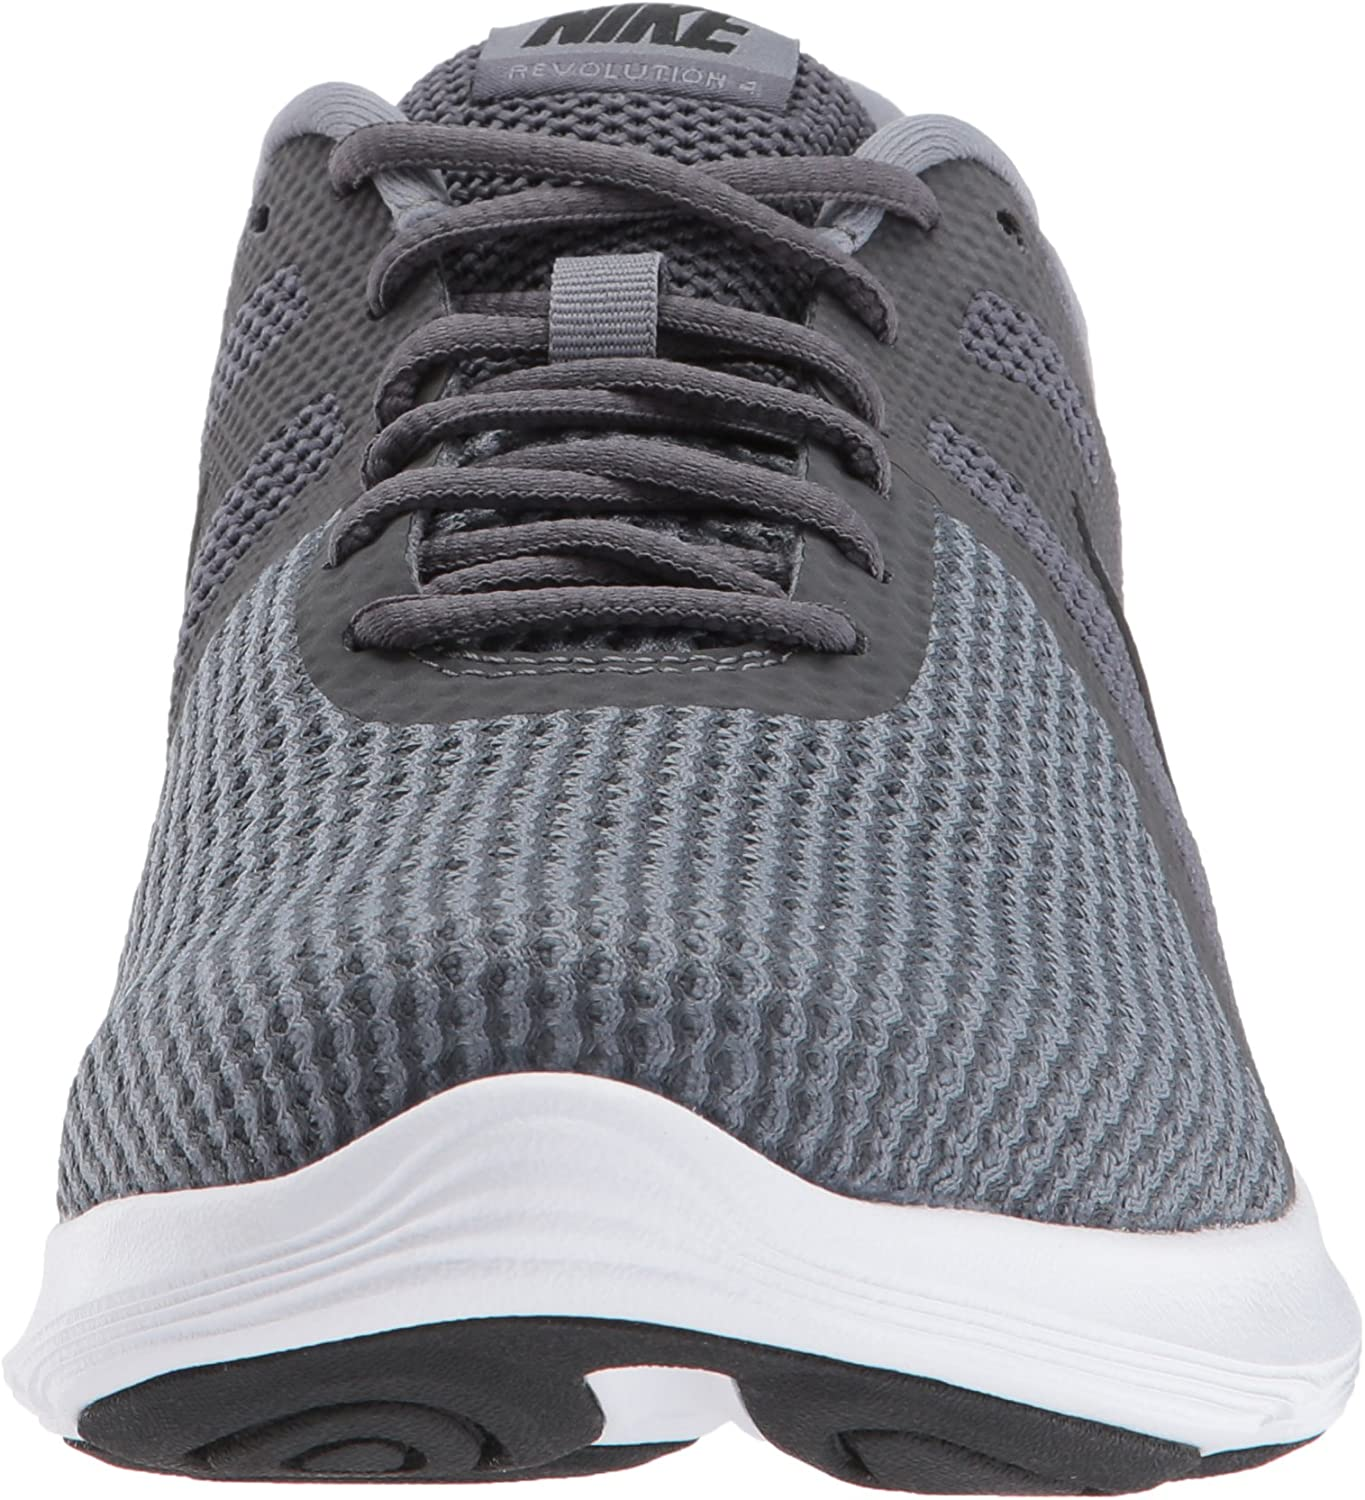 Nike Men s Revolution 4 Running Shoe, Dark Grey Black-Cool Grey White, 15 Regular US